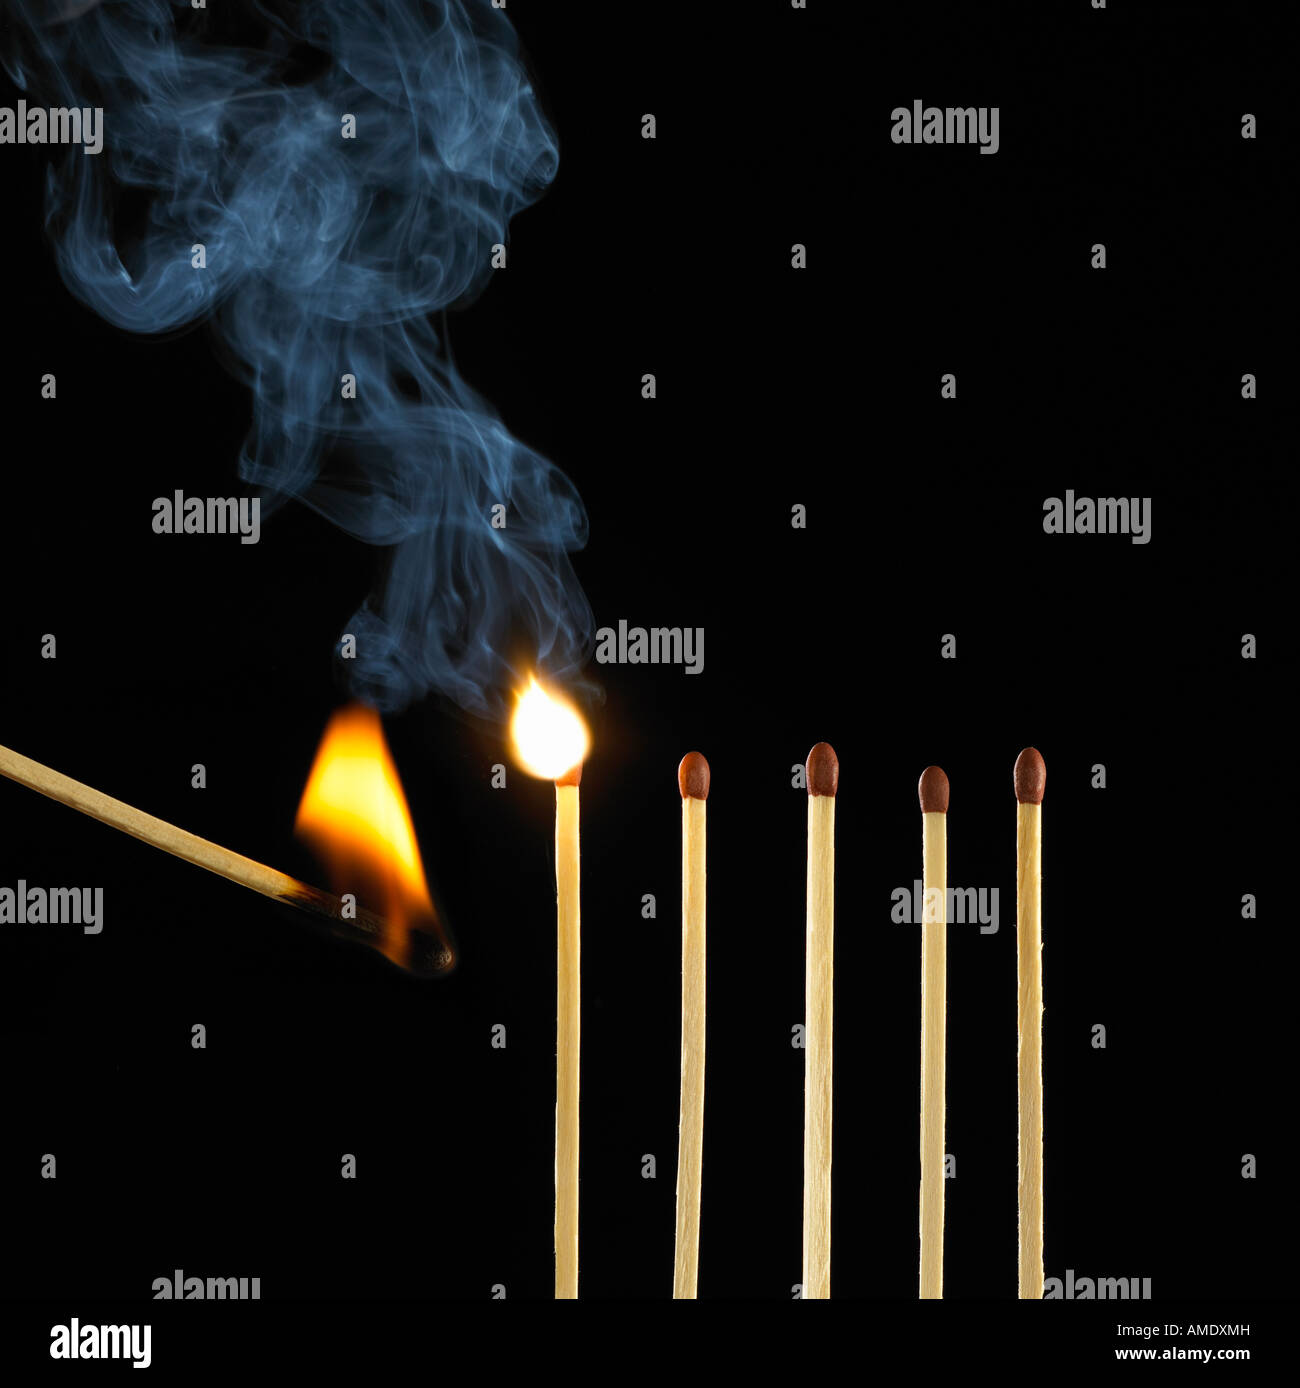 BURNING MATCH SETTING FIRE TO ROW OF FIVE MATCHES - Stock Image